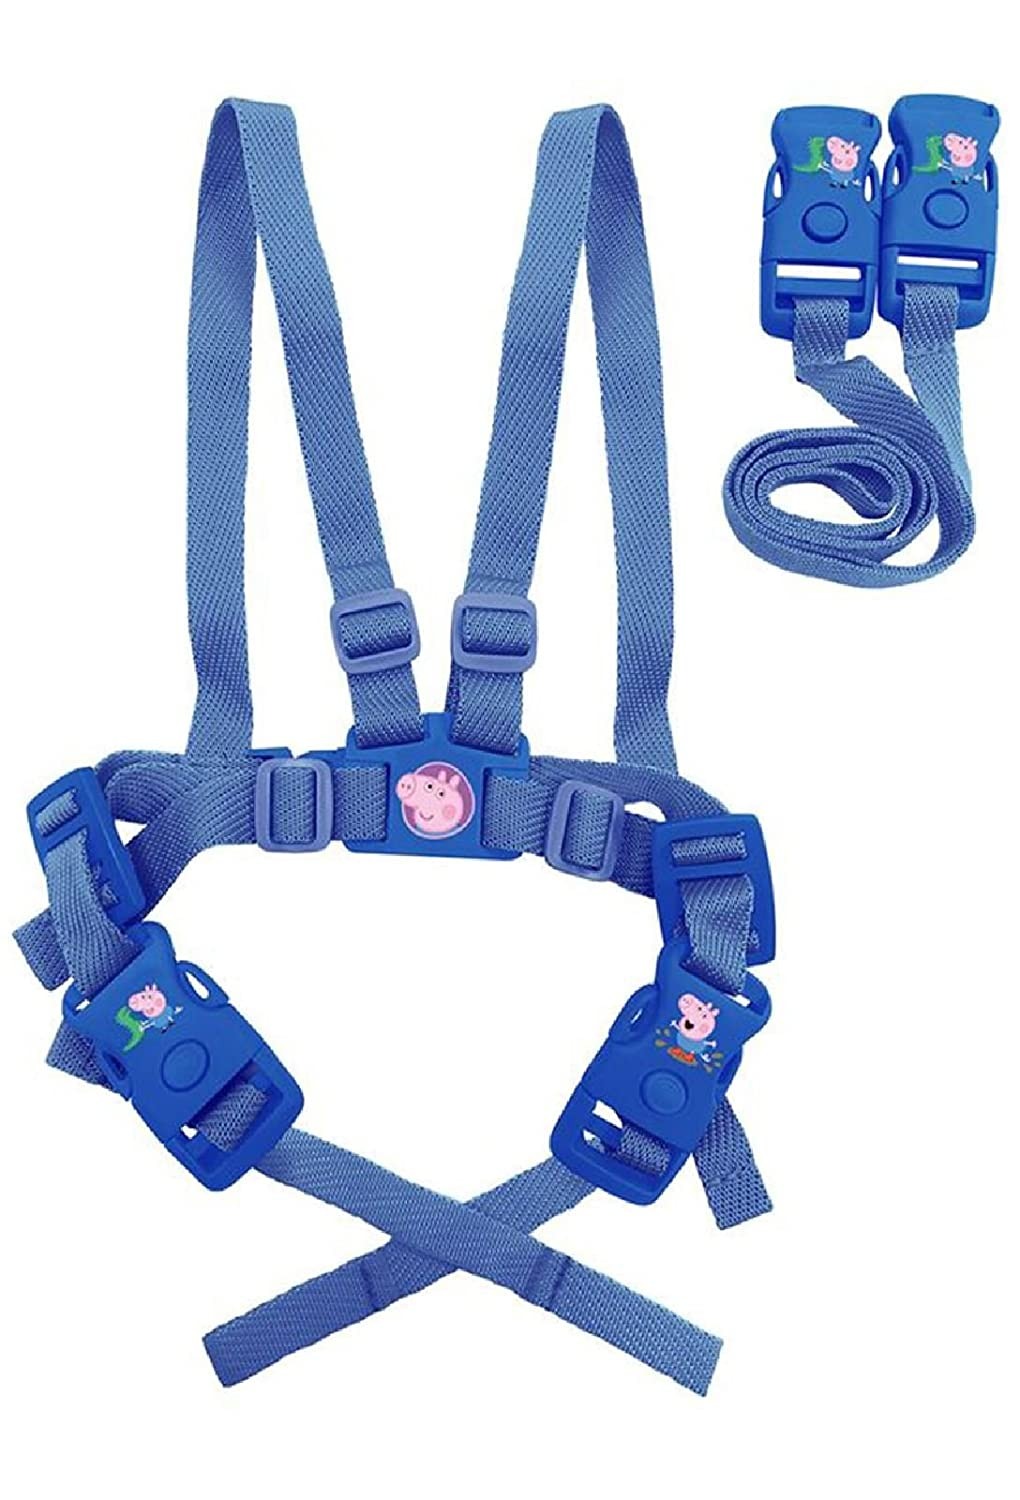 Boys George Pig Safety Harness and Travel Reins - Blue Alligator